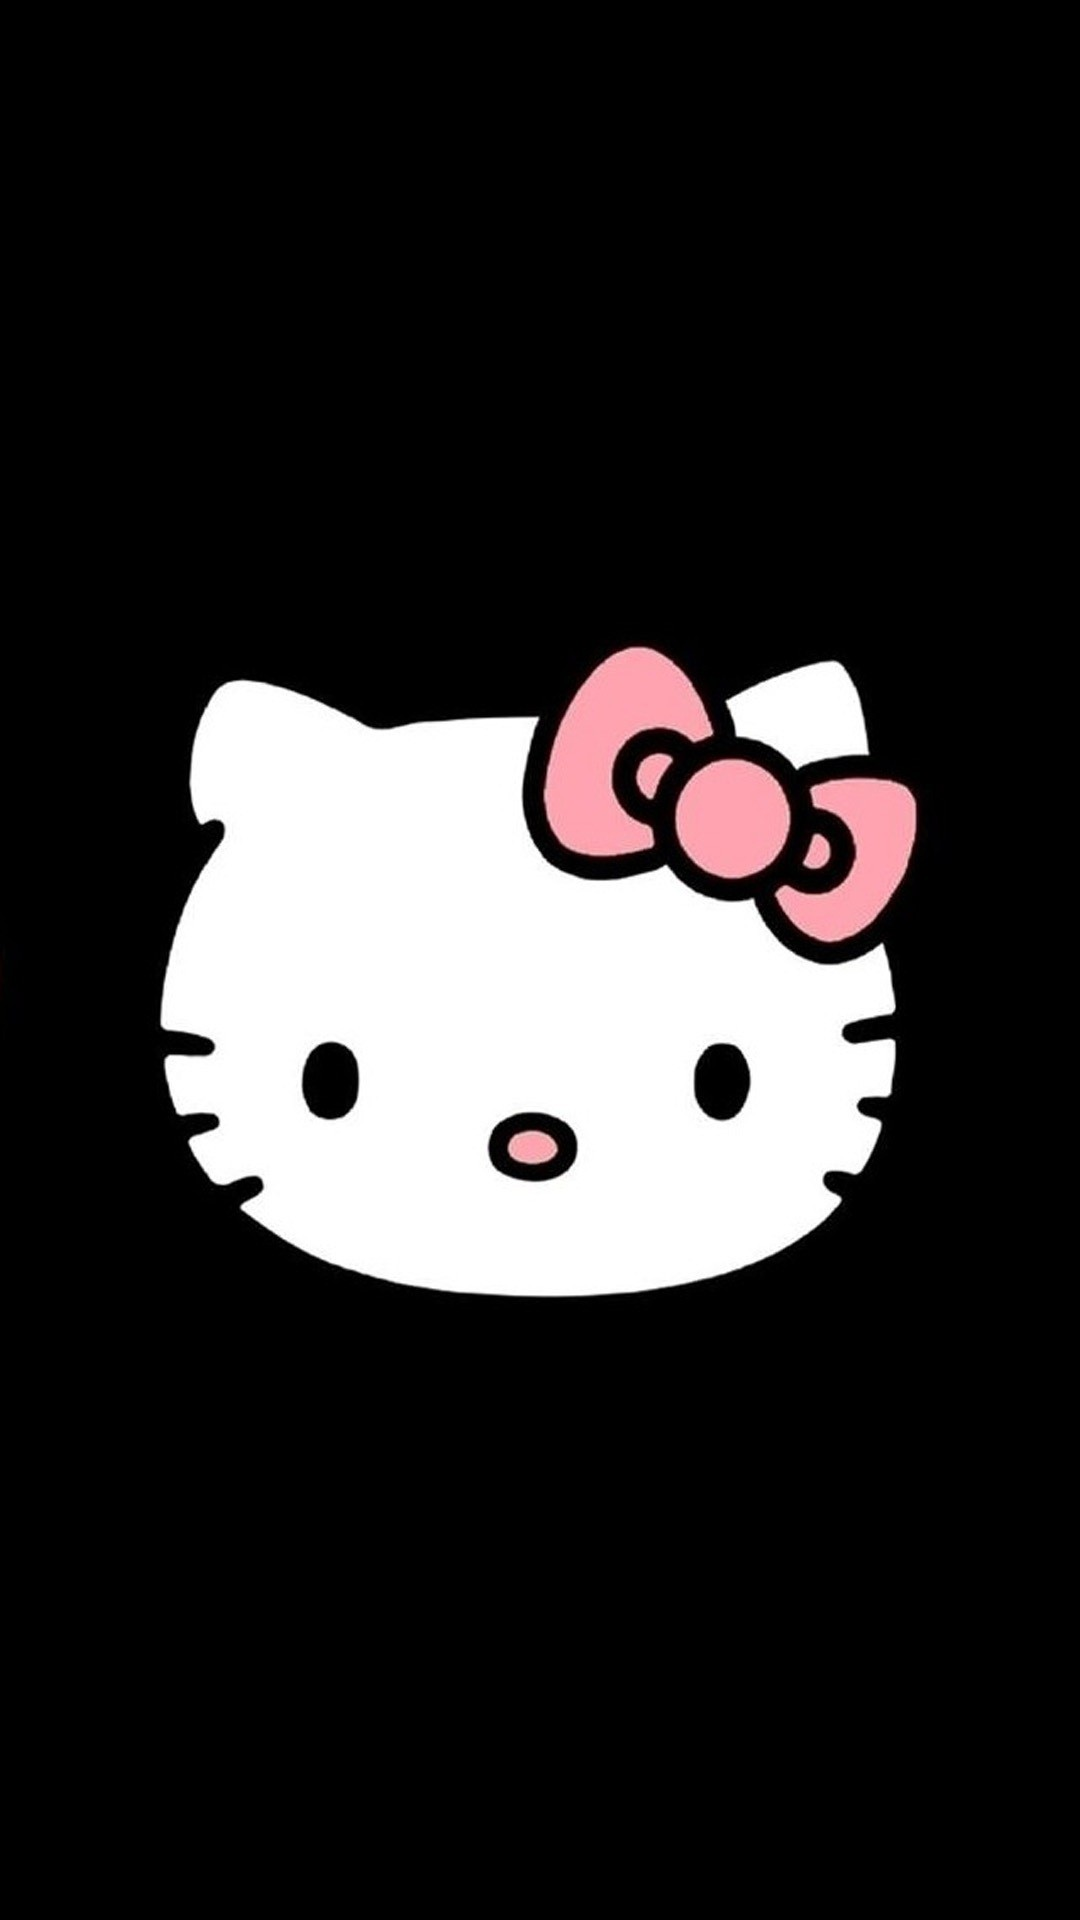 1080x1920 cute hello kitty wallpaper image for iphone mobile